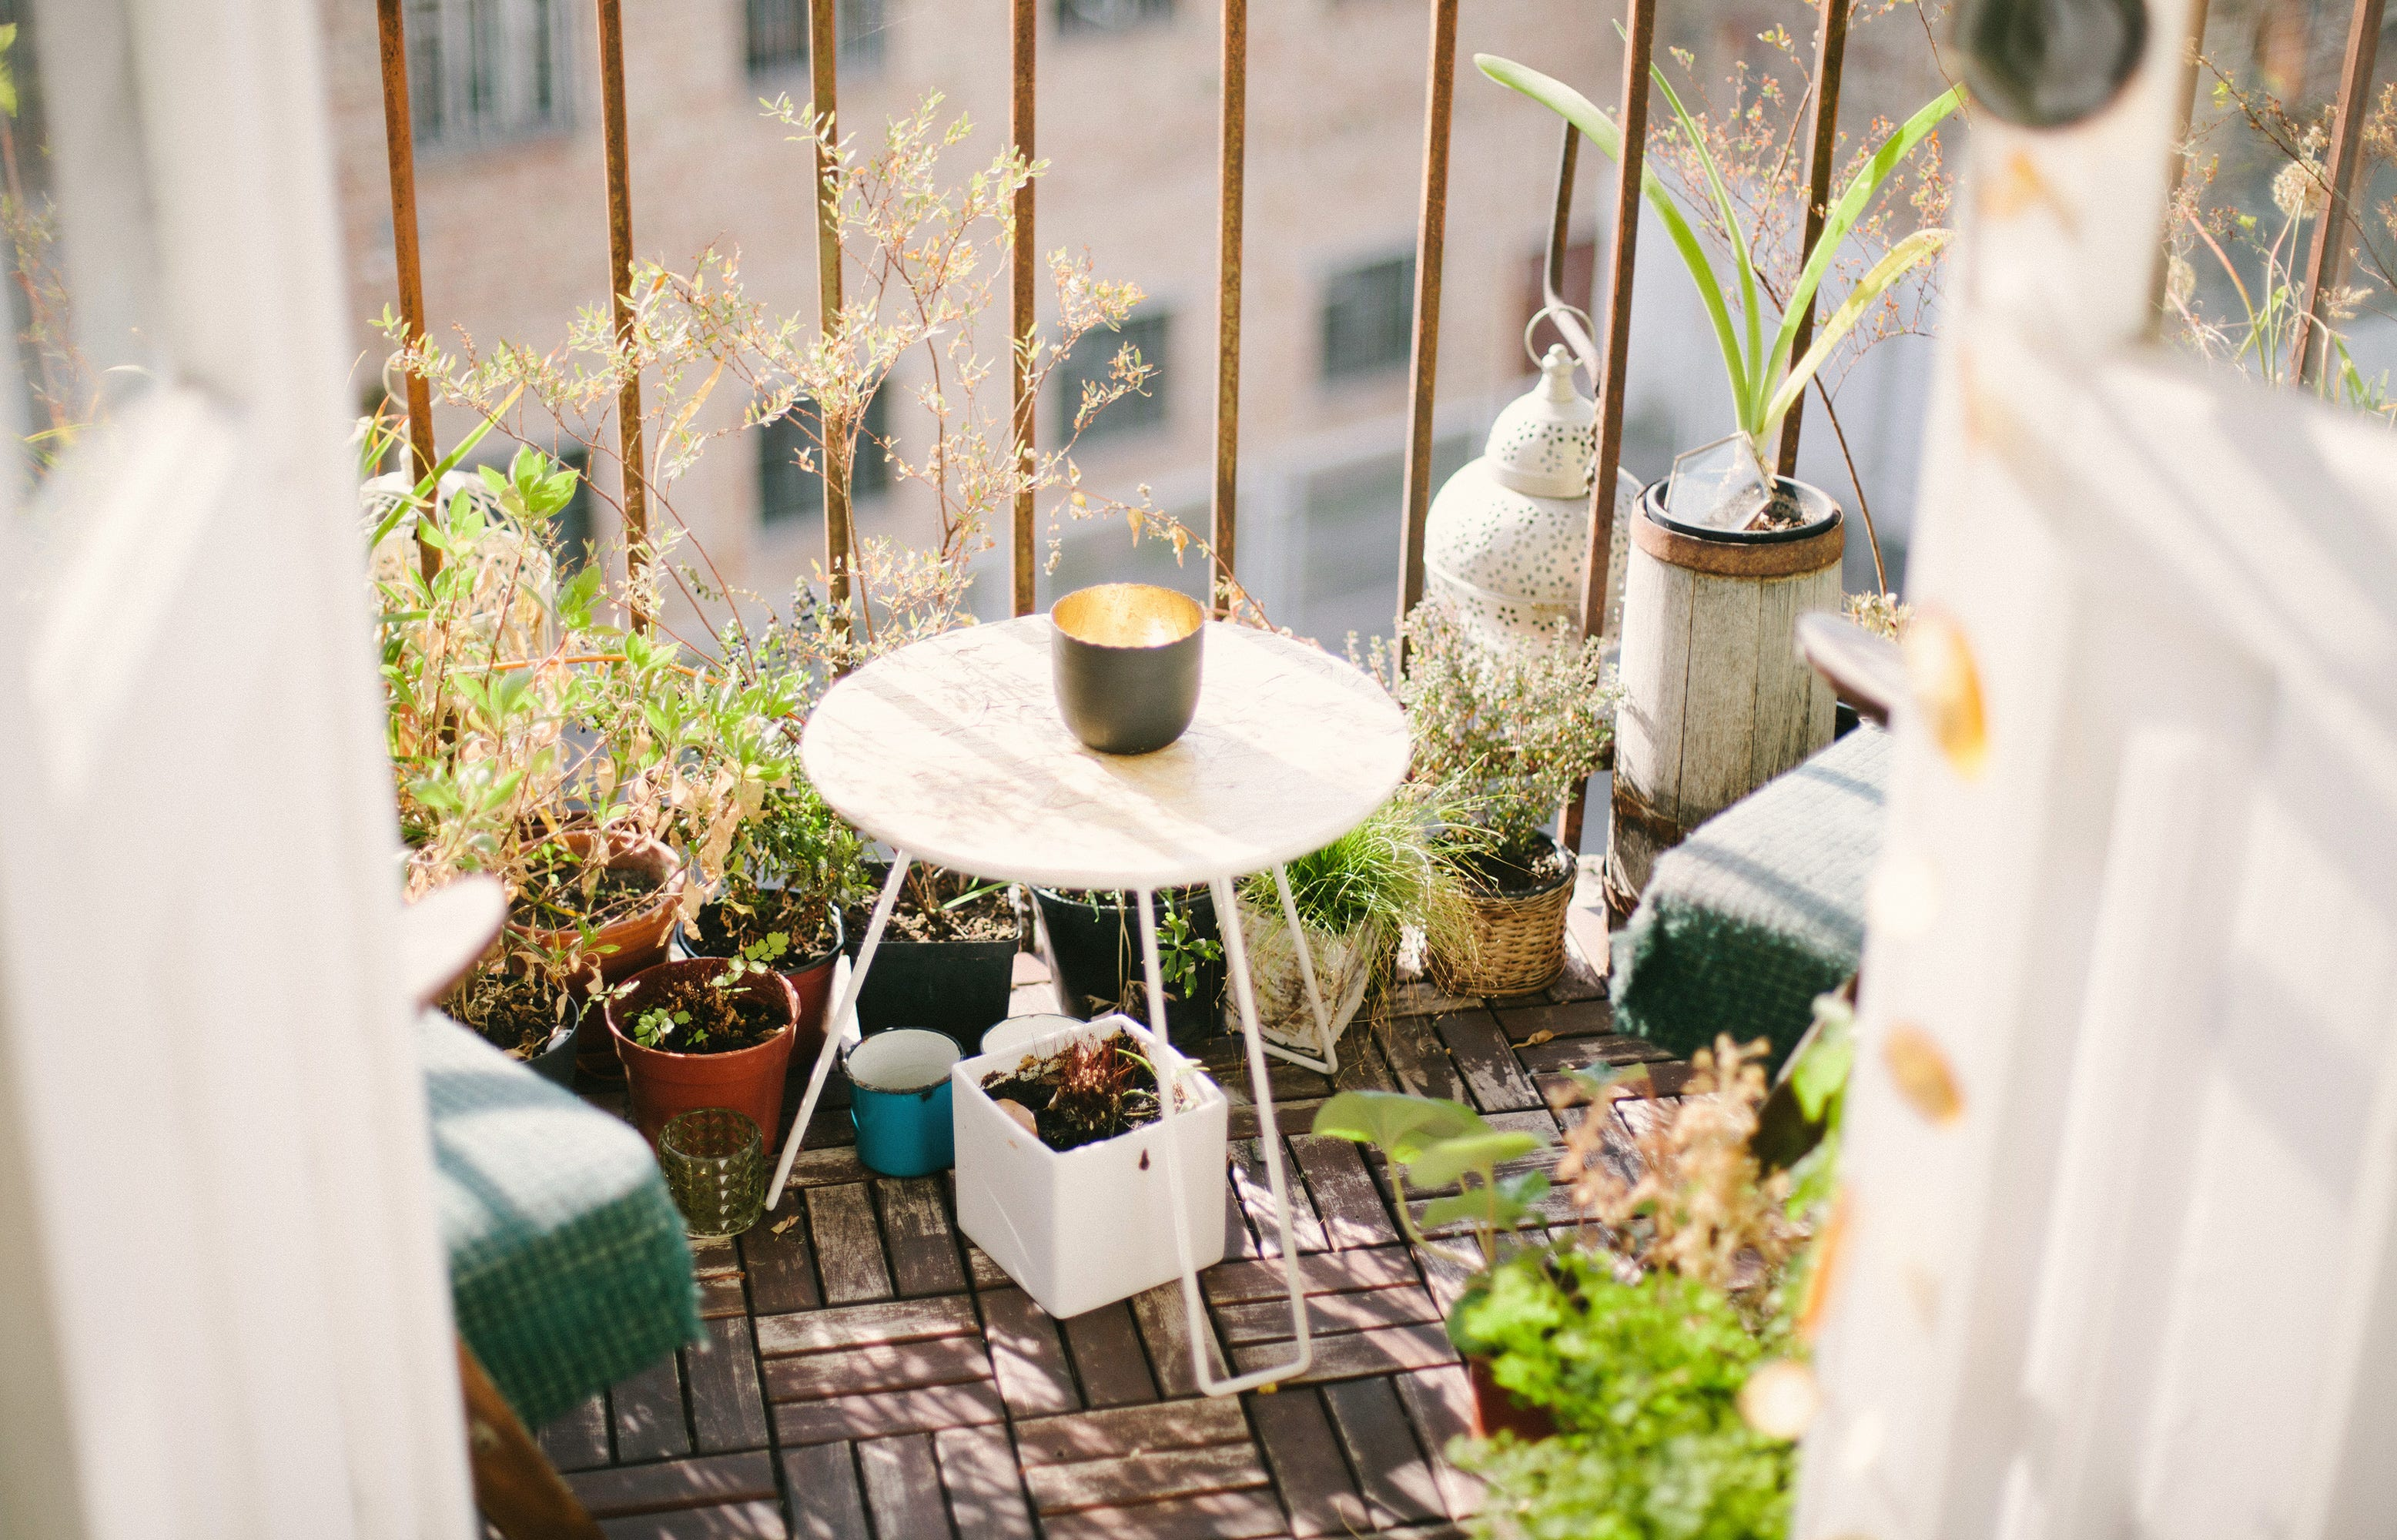 Cheap Budget Small Balcony Ideas